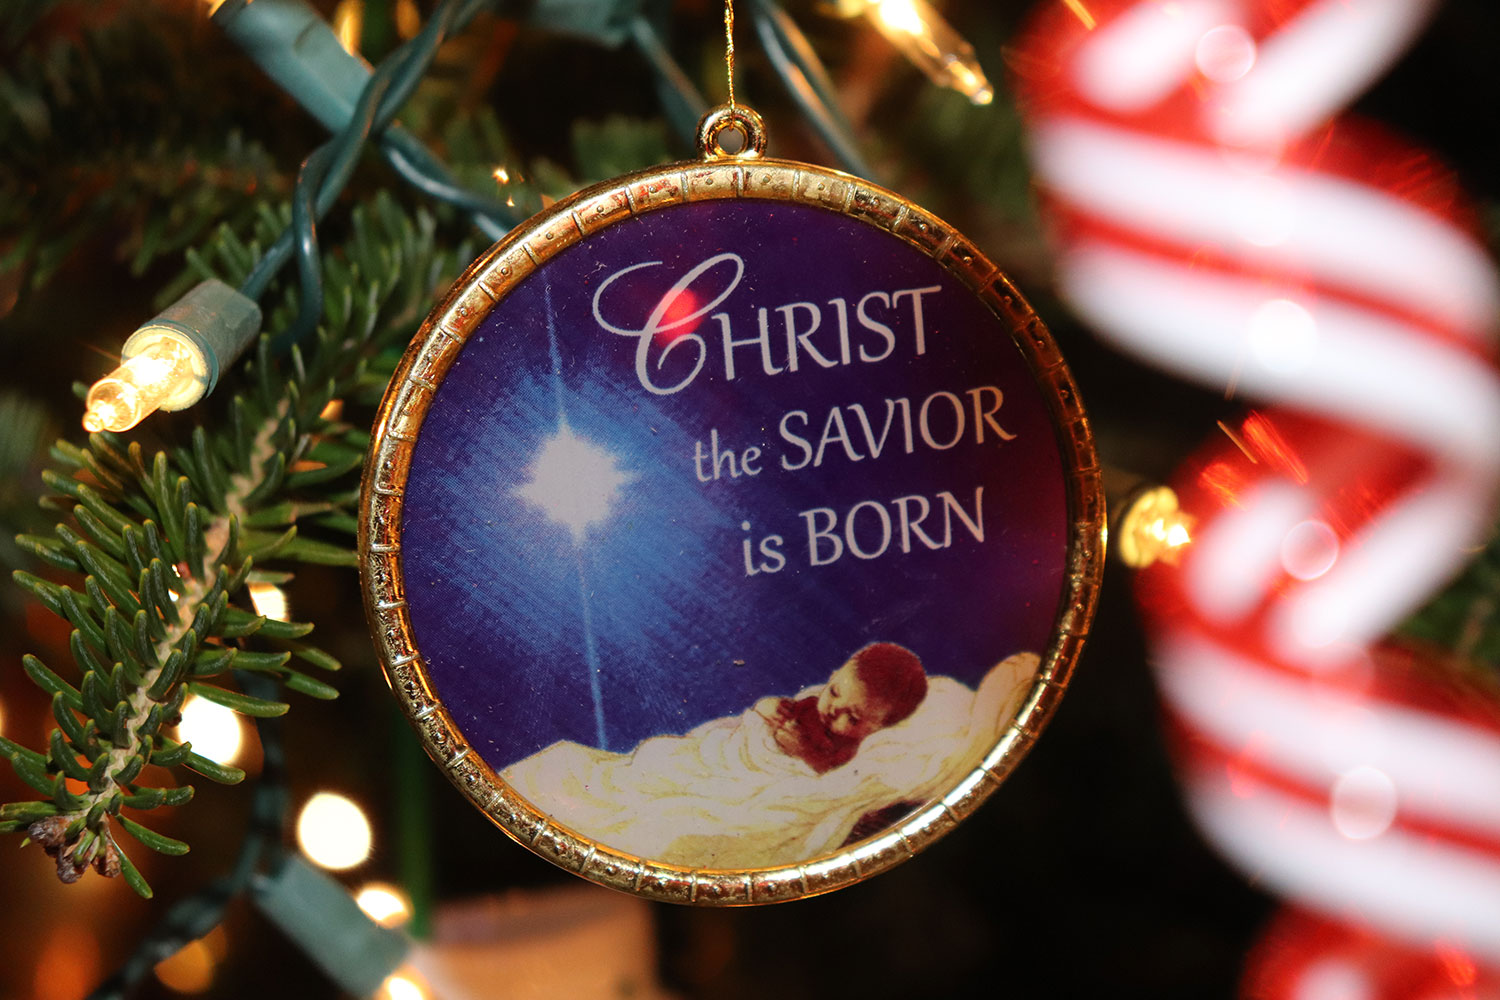 The meaning of Christmas should return to faith based focus.